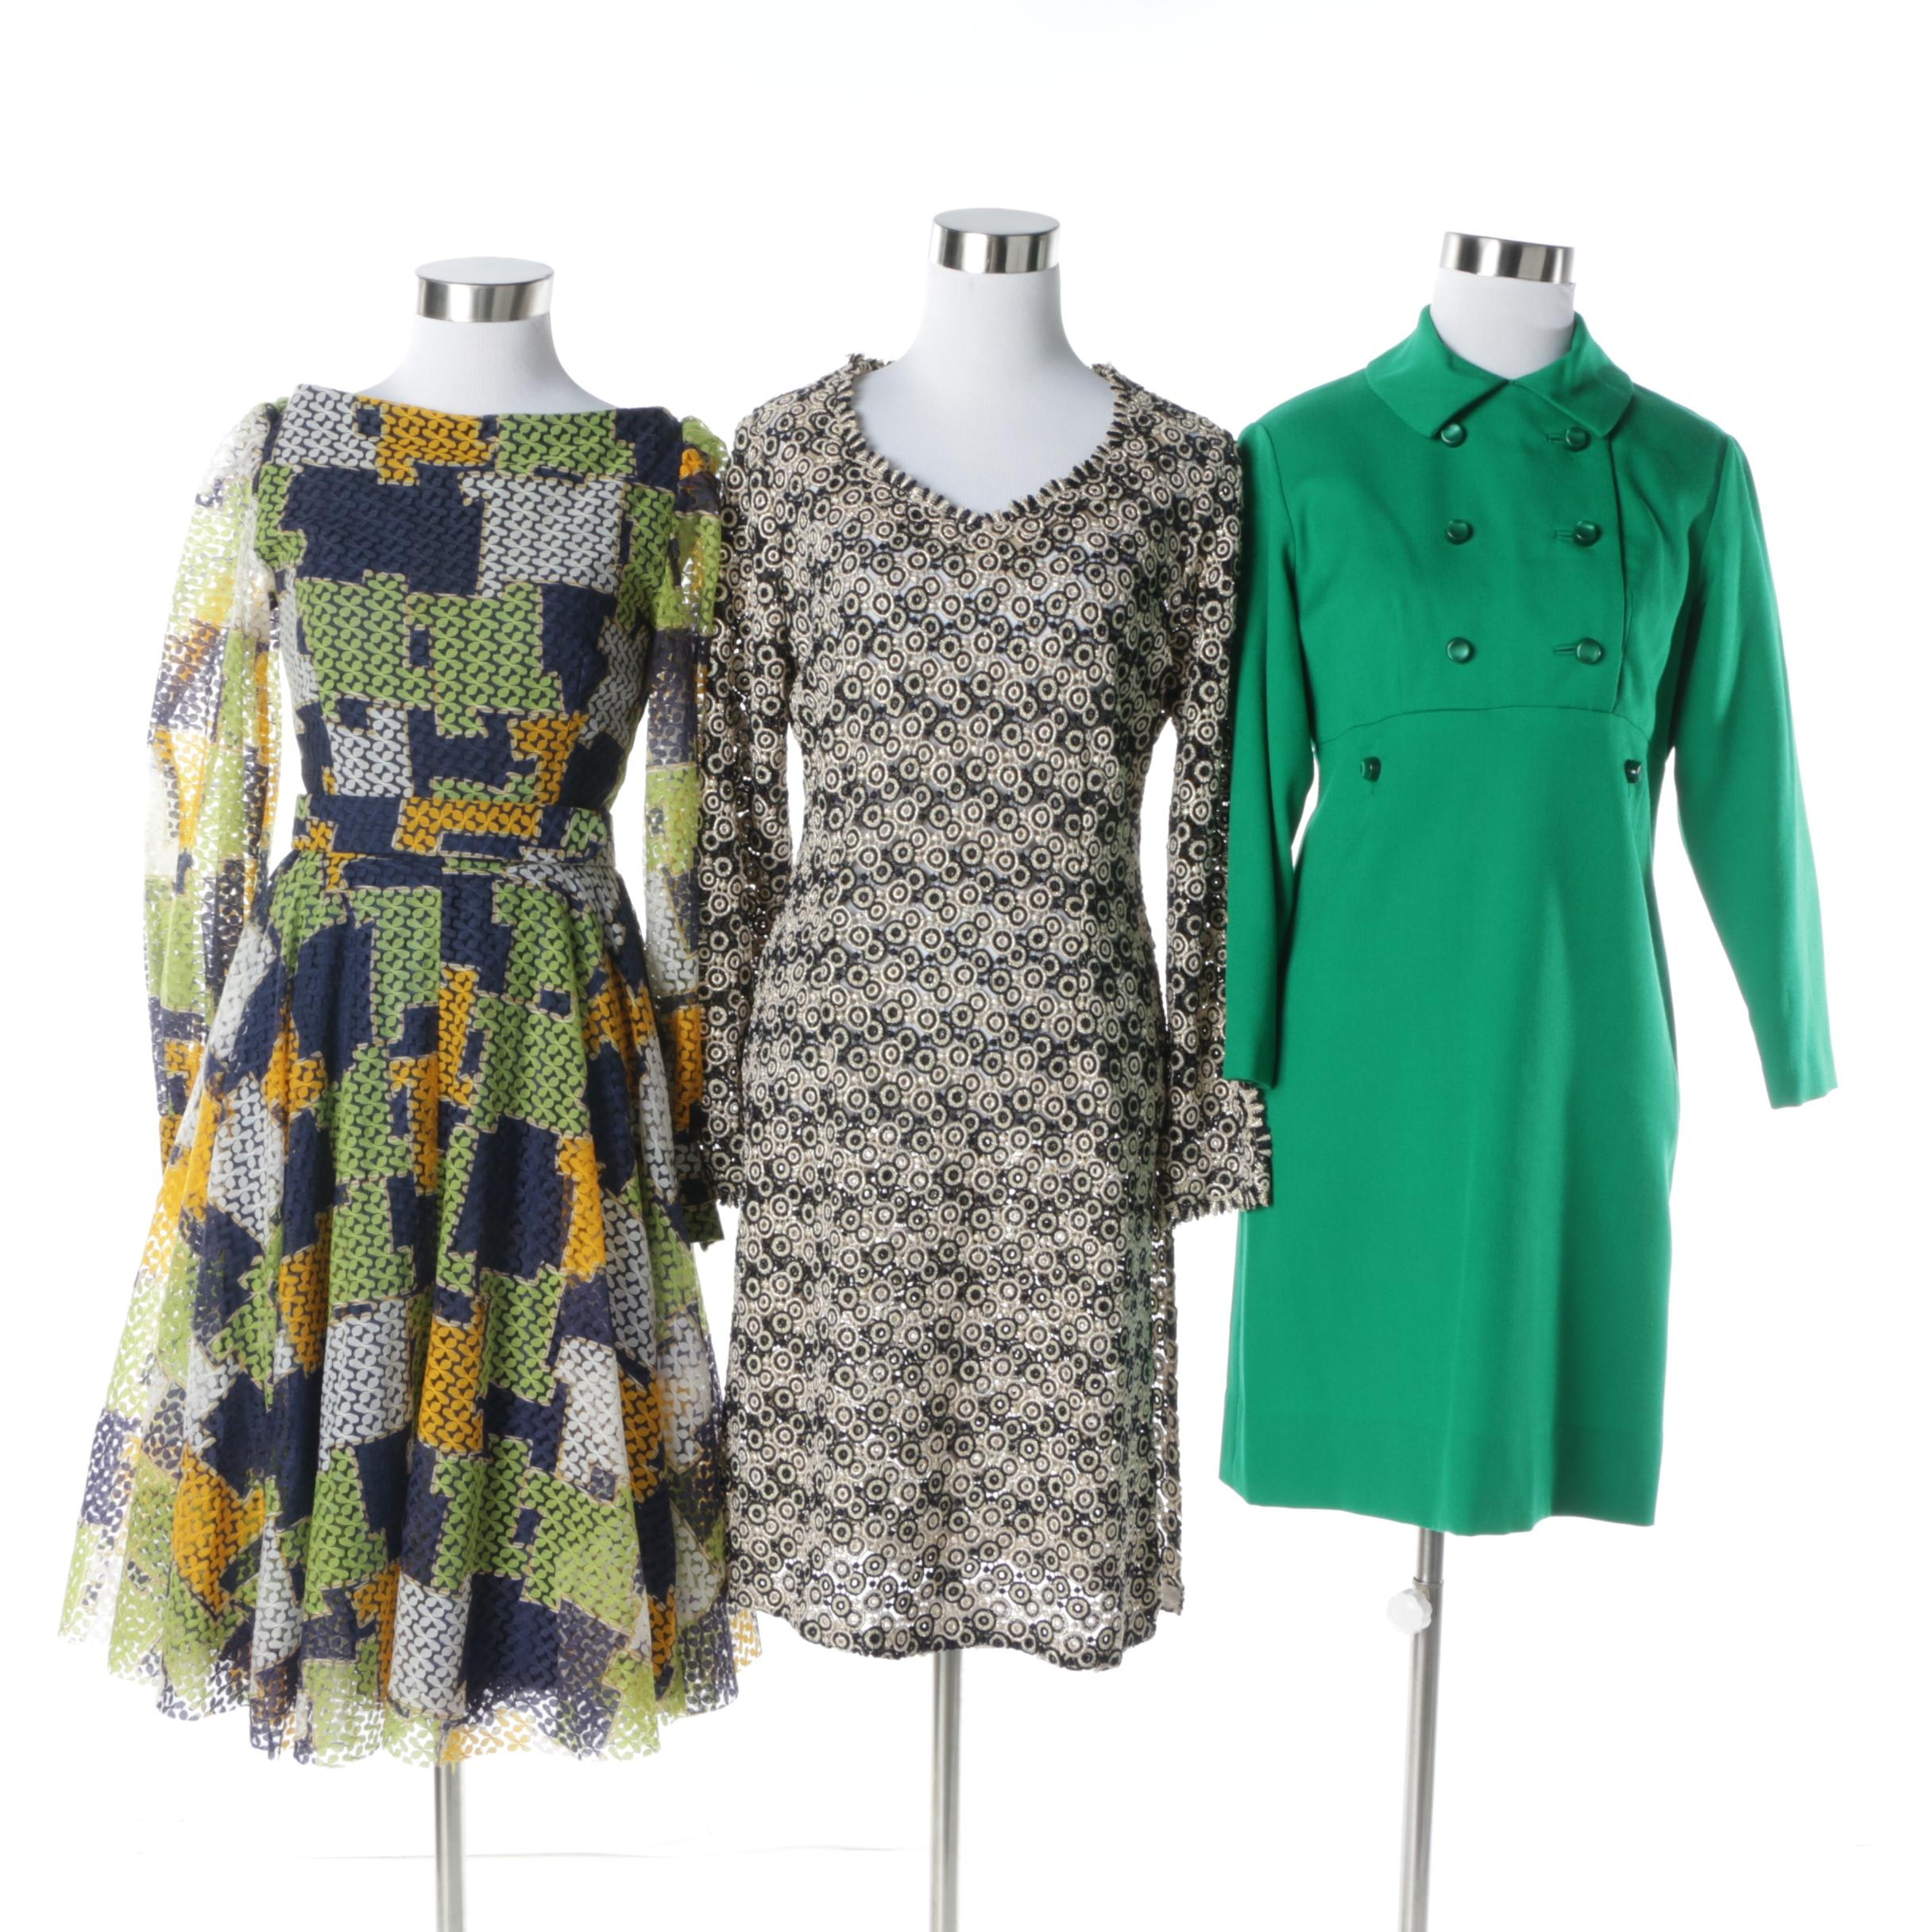 1970s Vintage Knit and Lace Dresses Including, Made in Italy